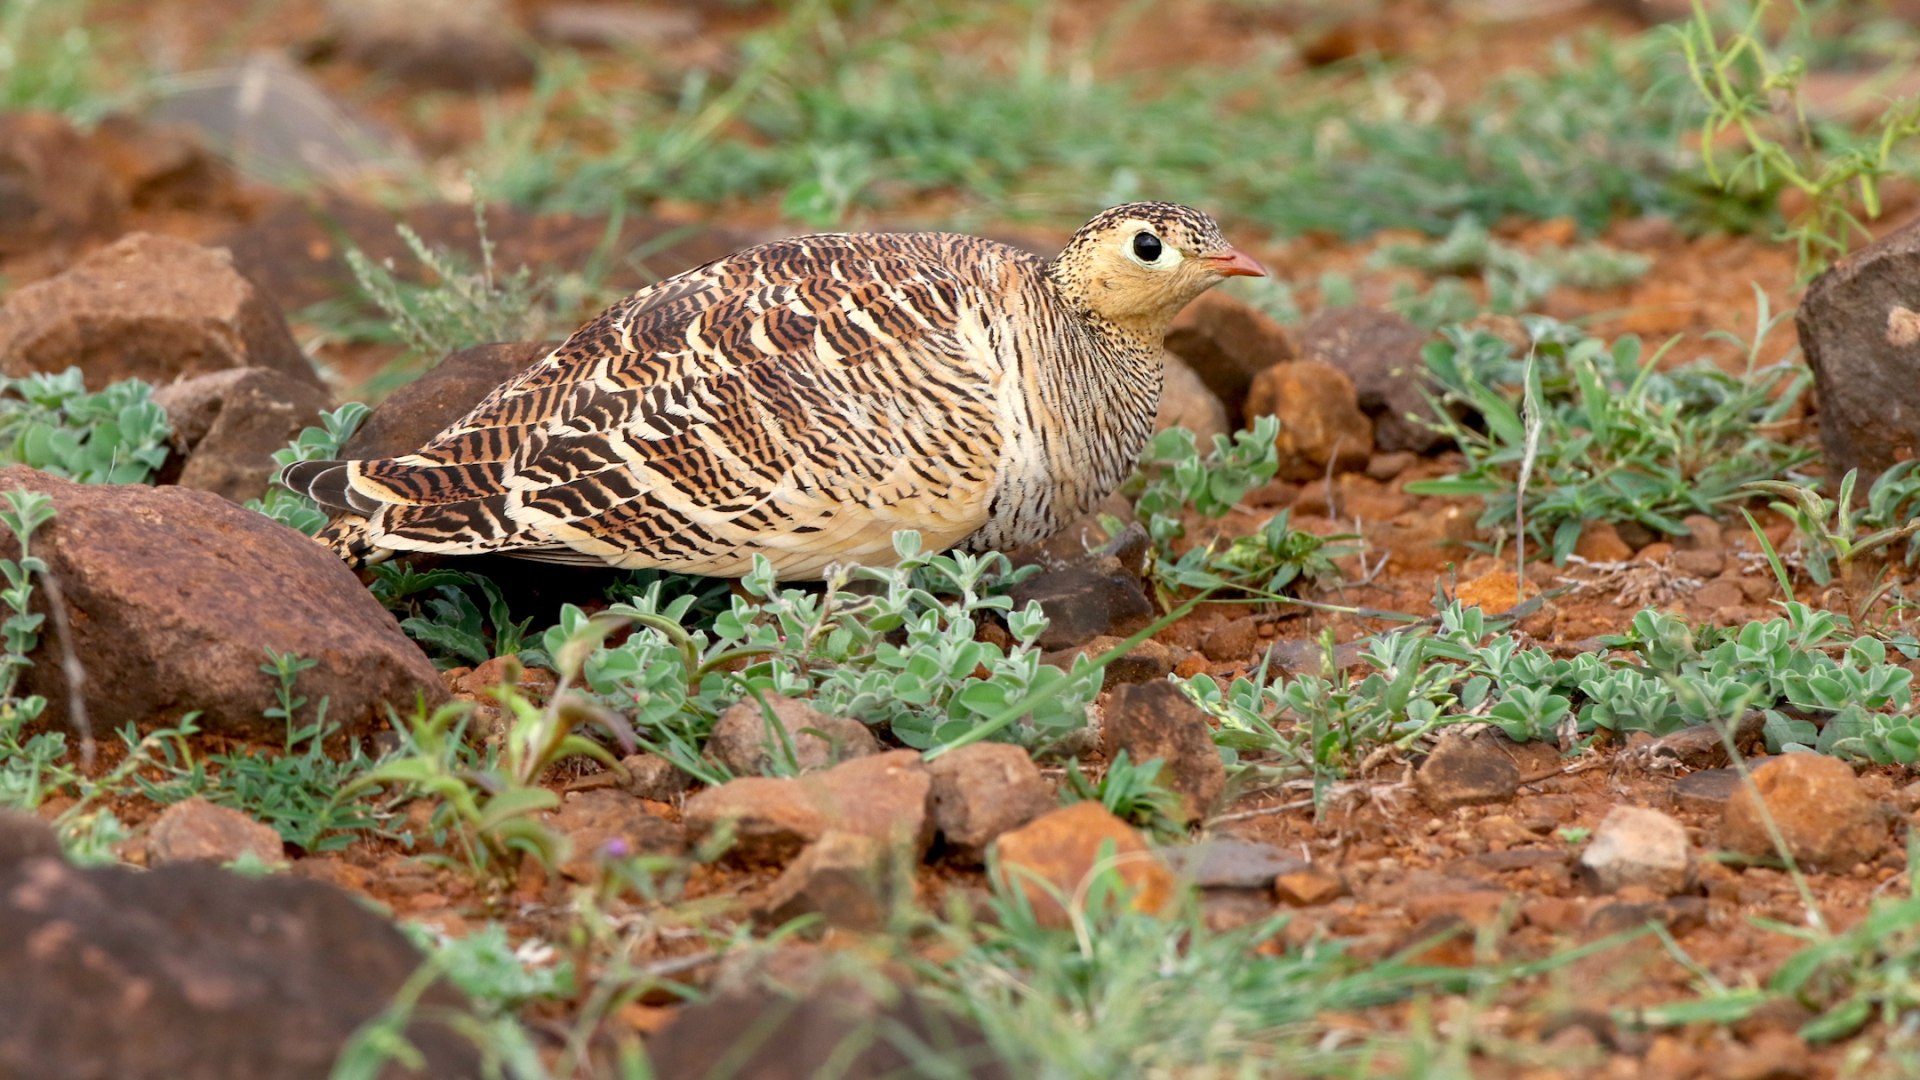 Painted Sandgrouse: The Art of Blending In